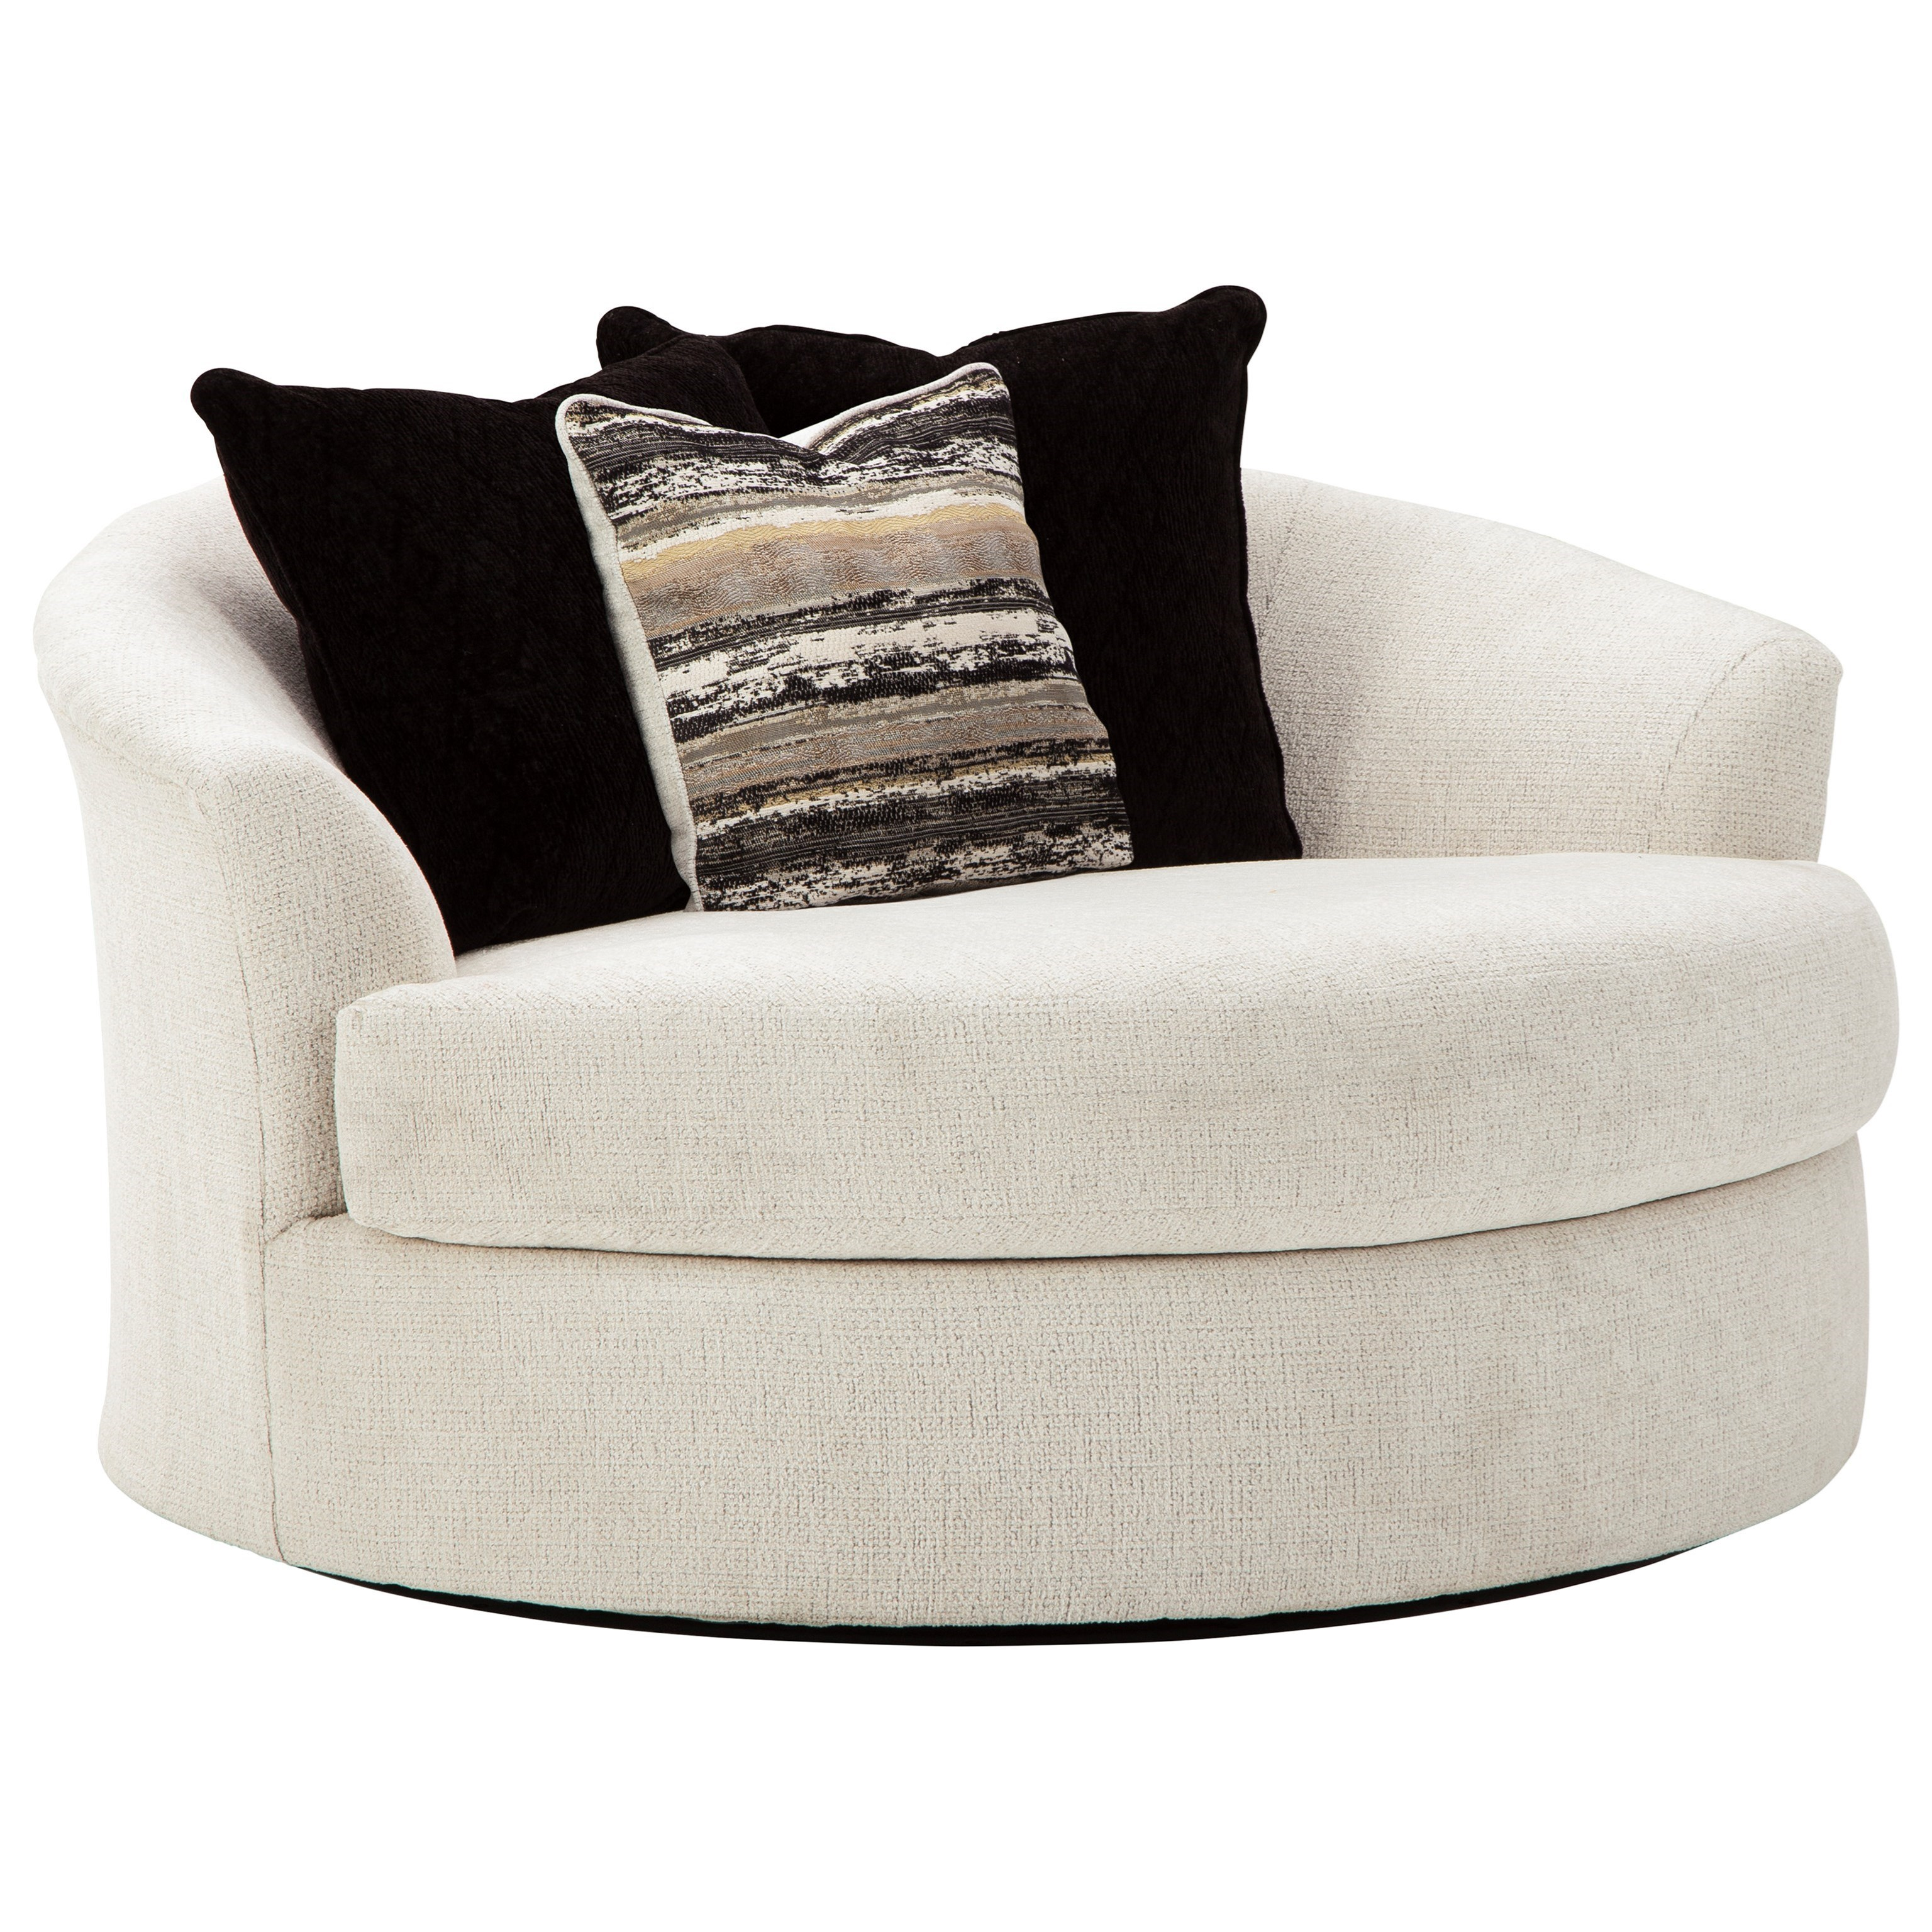 Cambri Oversized Round Swivel Chair by Ashley Furniture at Northeast Factory Direct